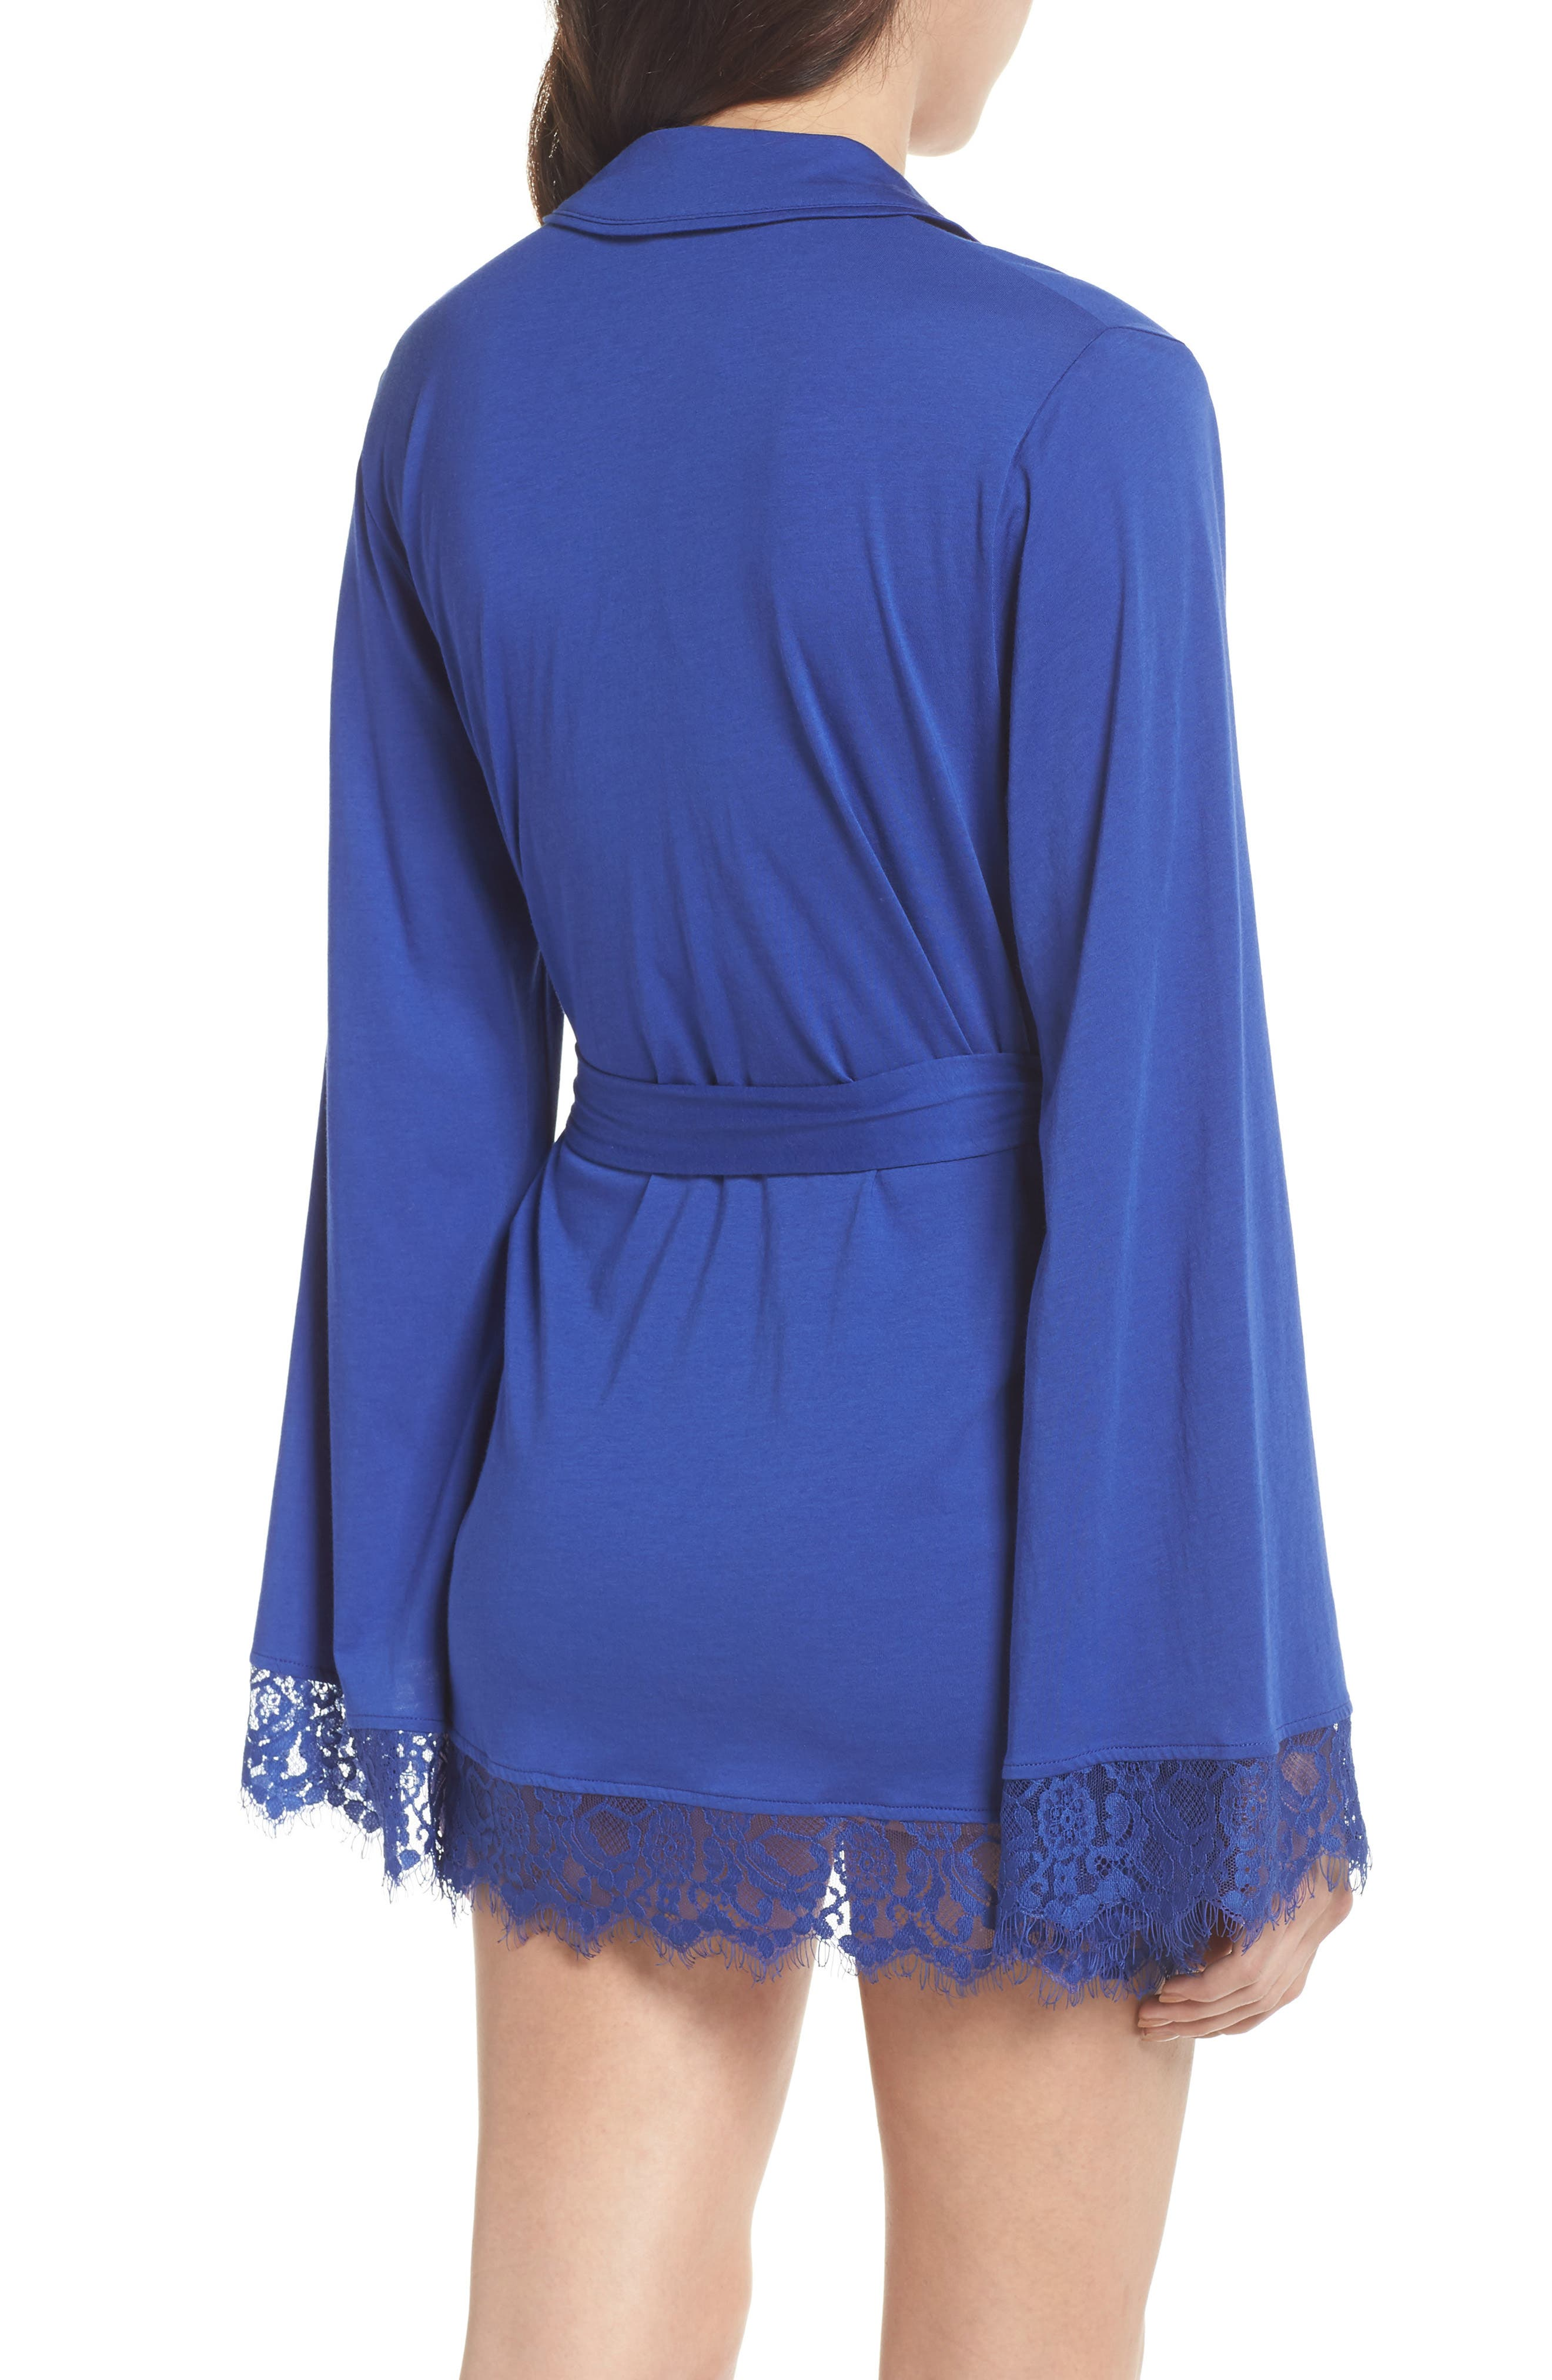 Sweetest Thing Robe,                             Alternate thumbnail 2, color,                             Blue